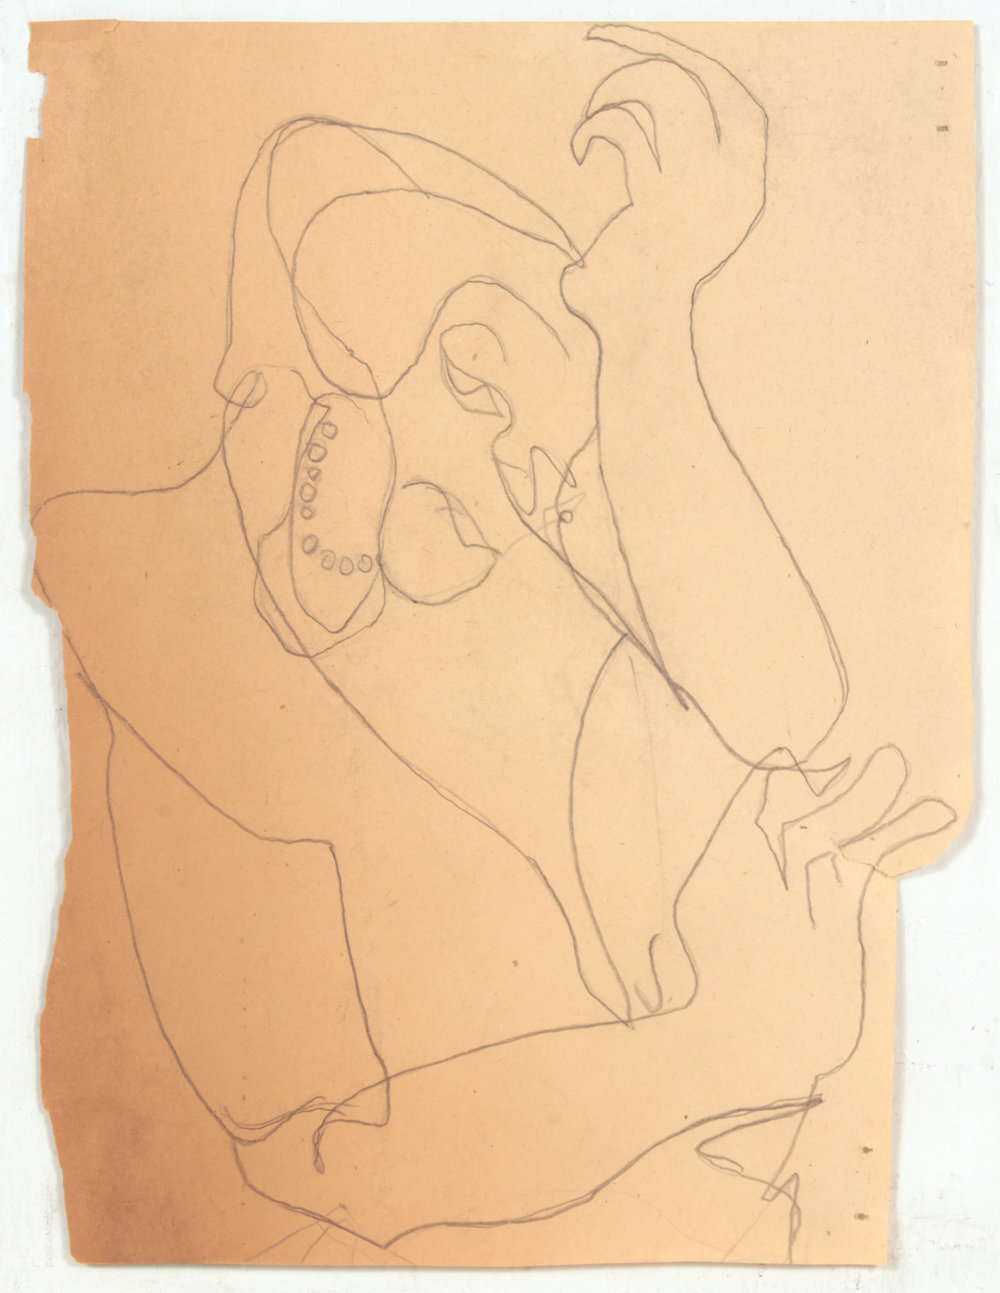 41. 1947-48 c, NT (Lady Holding Head with Pearls), Graphite on Paper, 8.75x6.75, PPS 1438.JPG